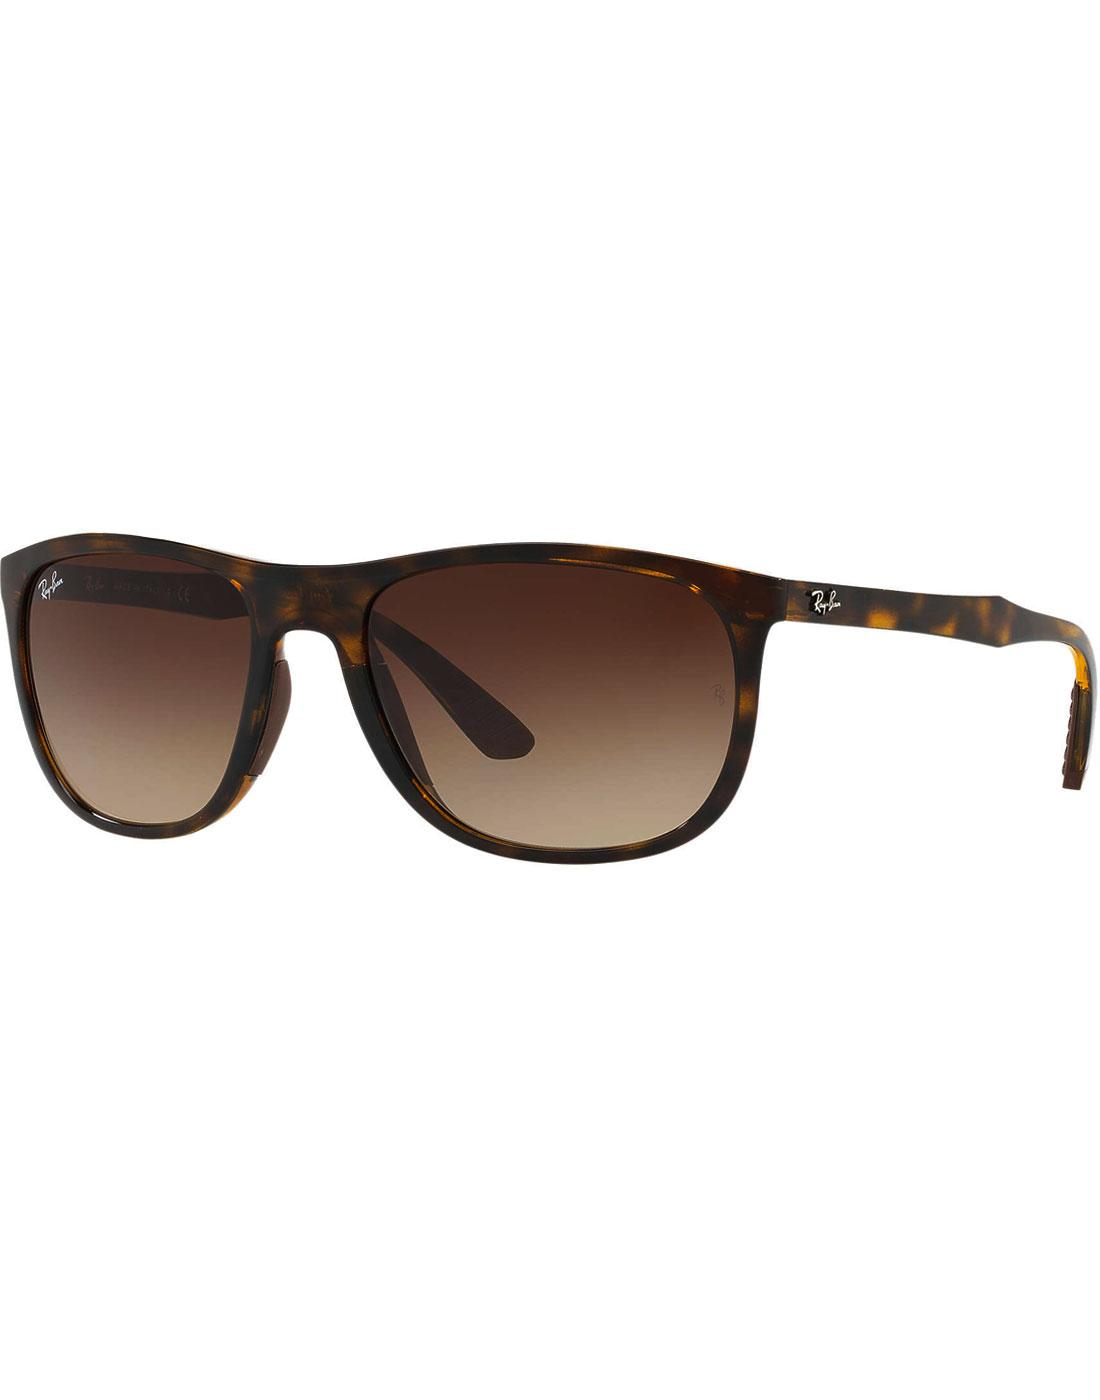 RAY-BAN Retro Wrap Around Wayfarer Sunglasses (H)